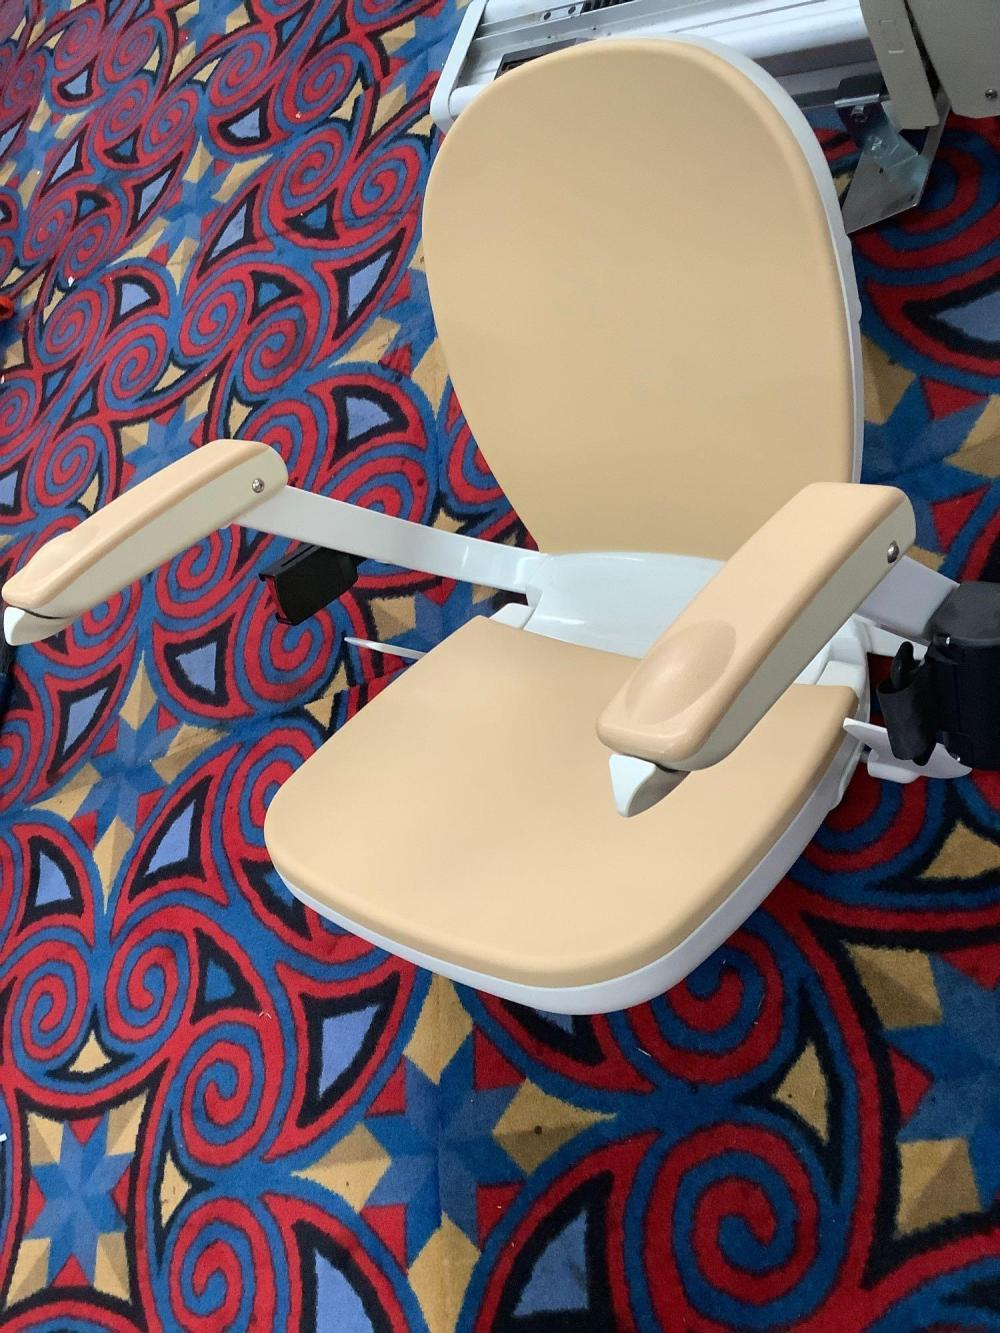 Lot 42: Acorn Stairlifters Superglide 130 straight stairlift with keys and manual, tested and powers up